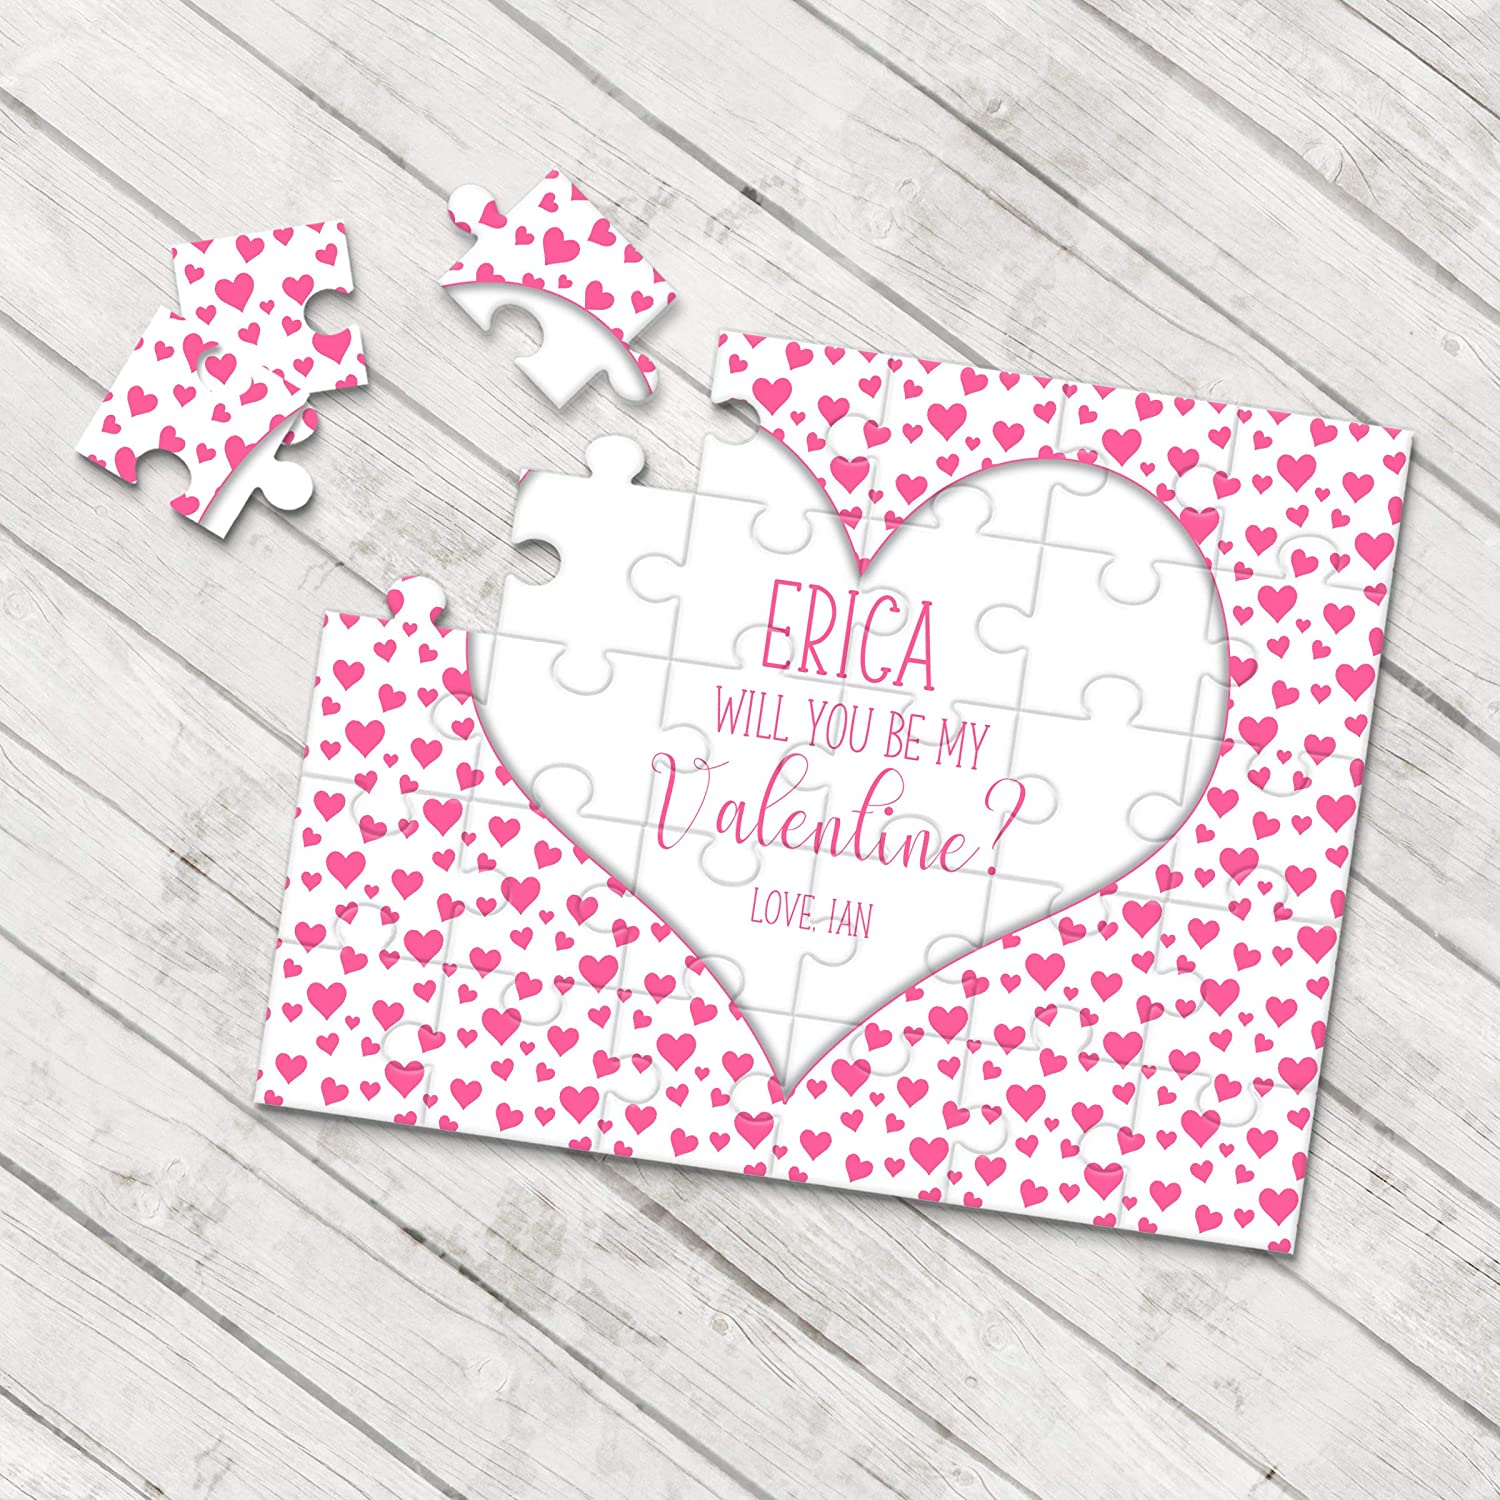 Gifts For Her P0096 Be My Valentine Puzzle Valentines Day Gift Ask Girlfriend Boyfriend